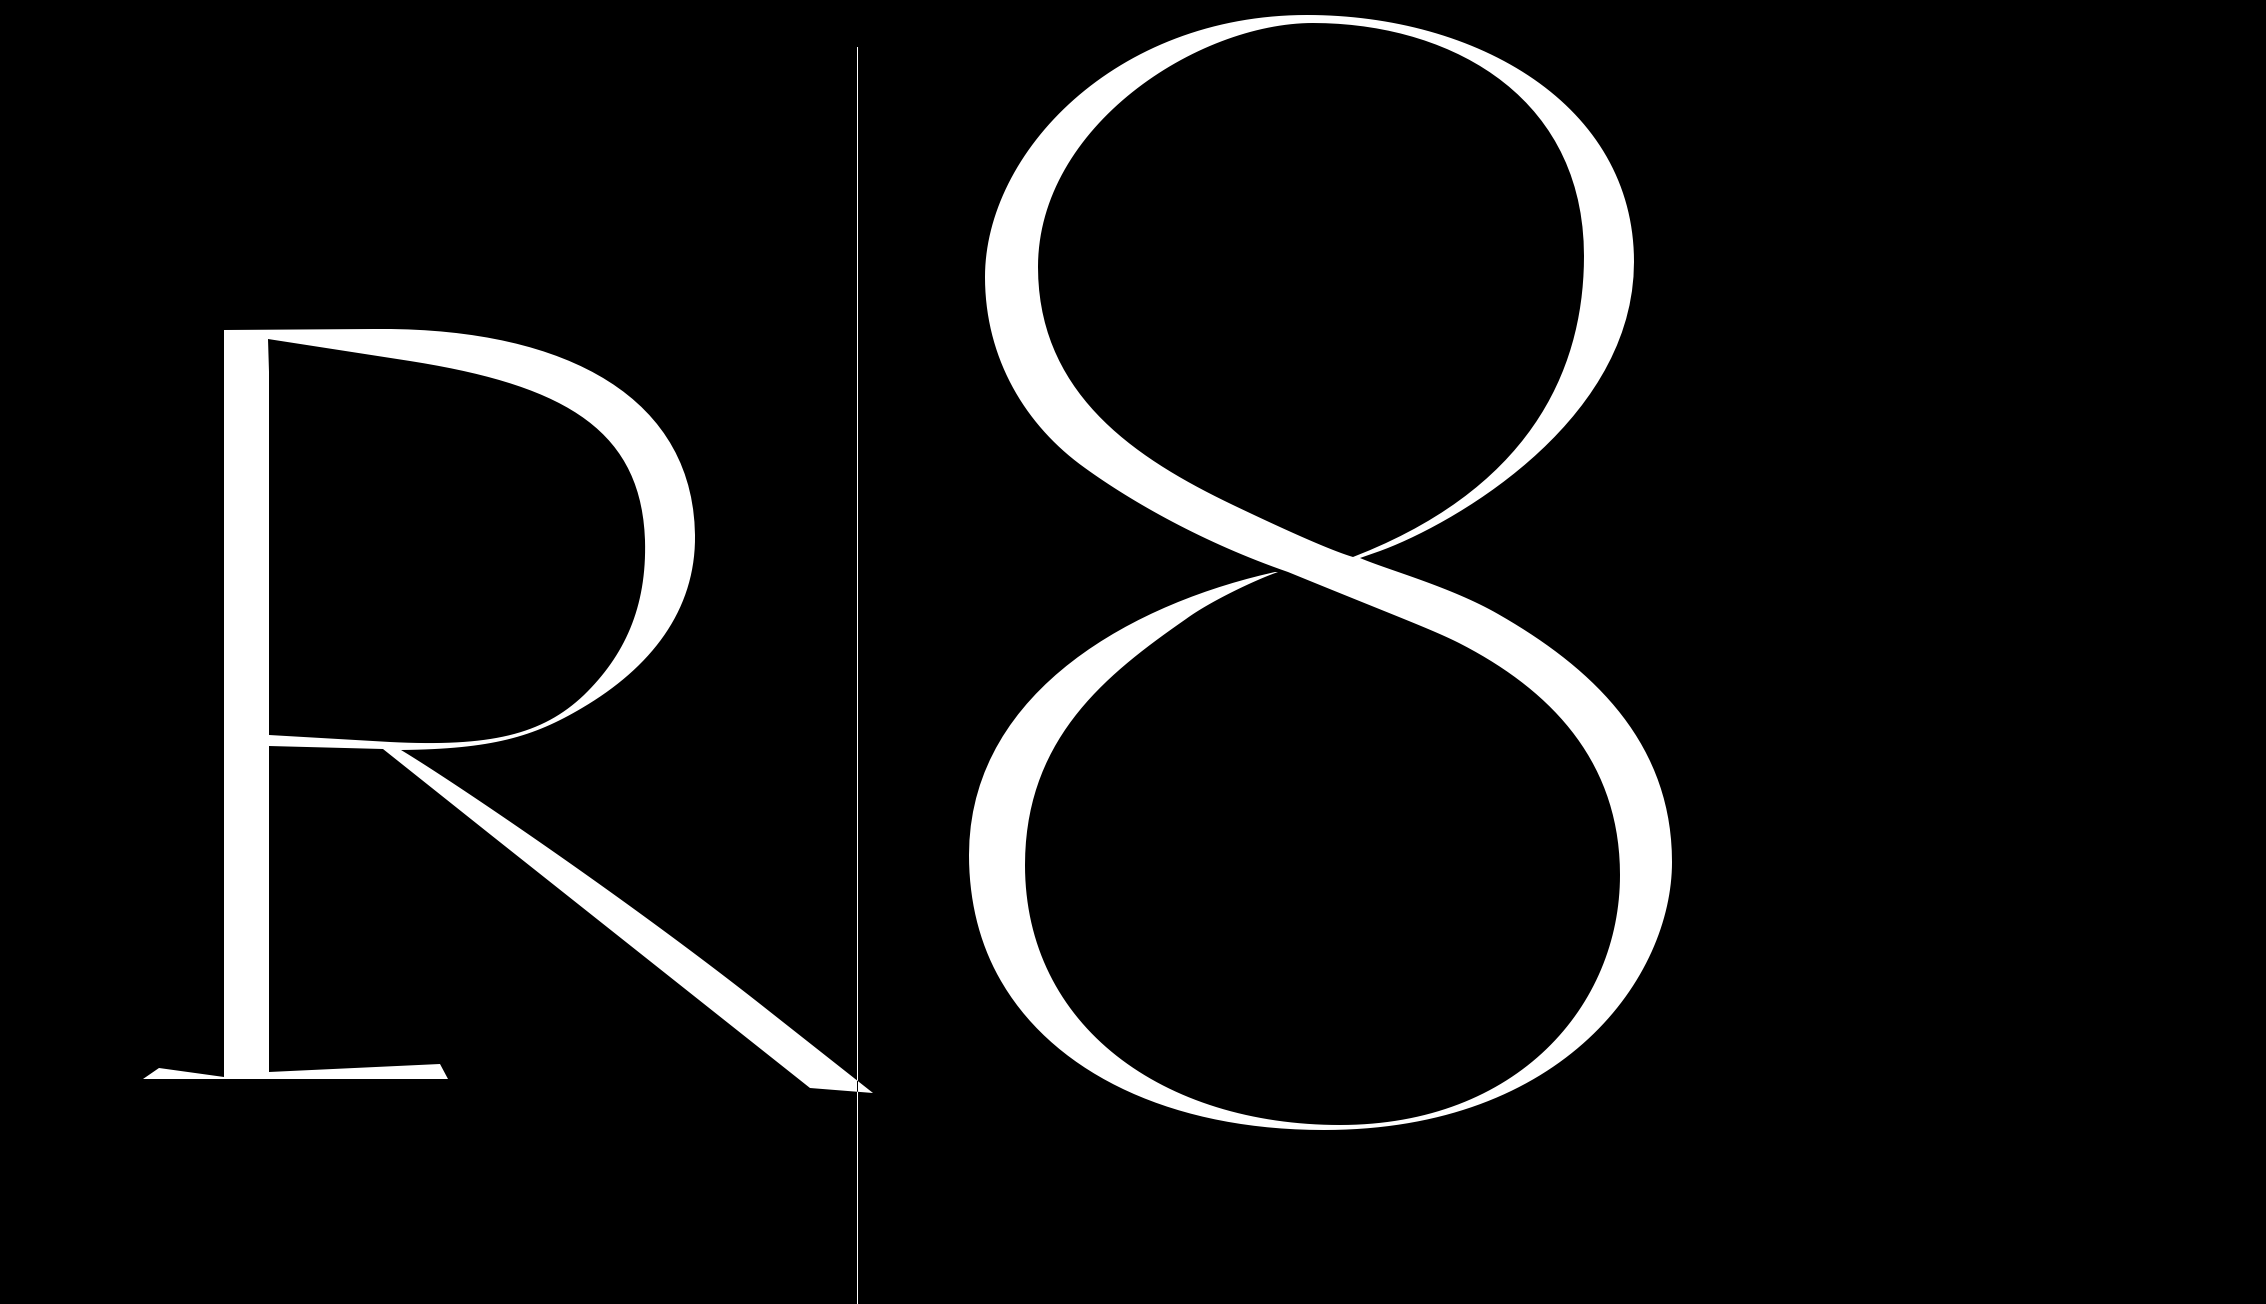 'r8': Letter Design Comparison in FontLab Metrics Window